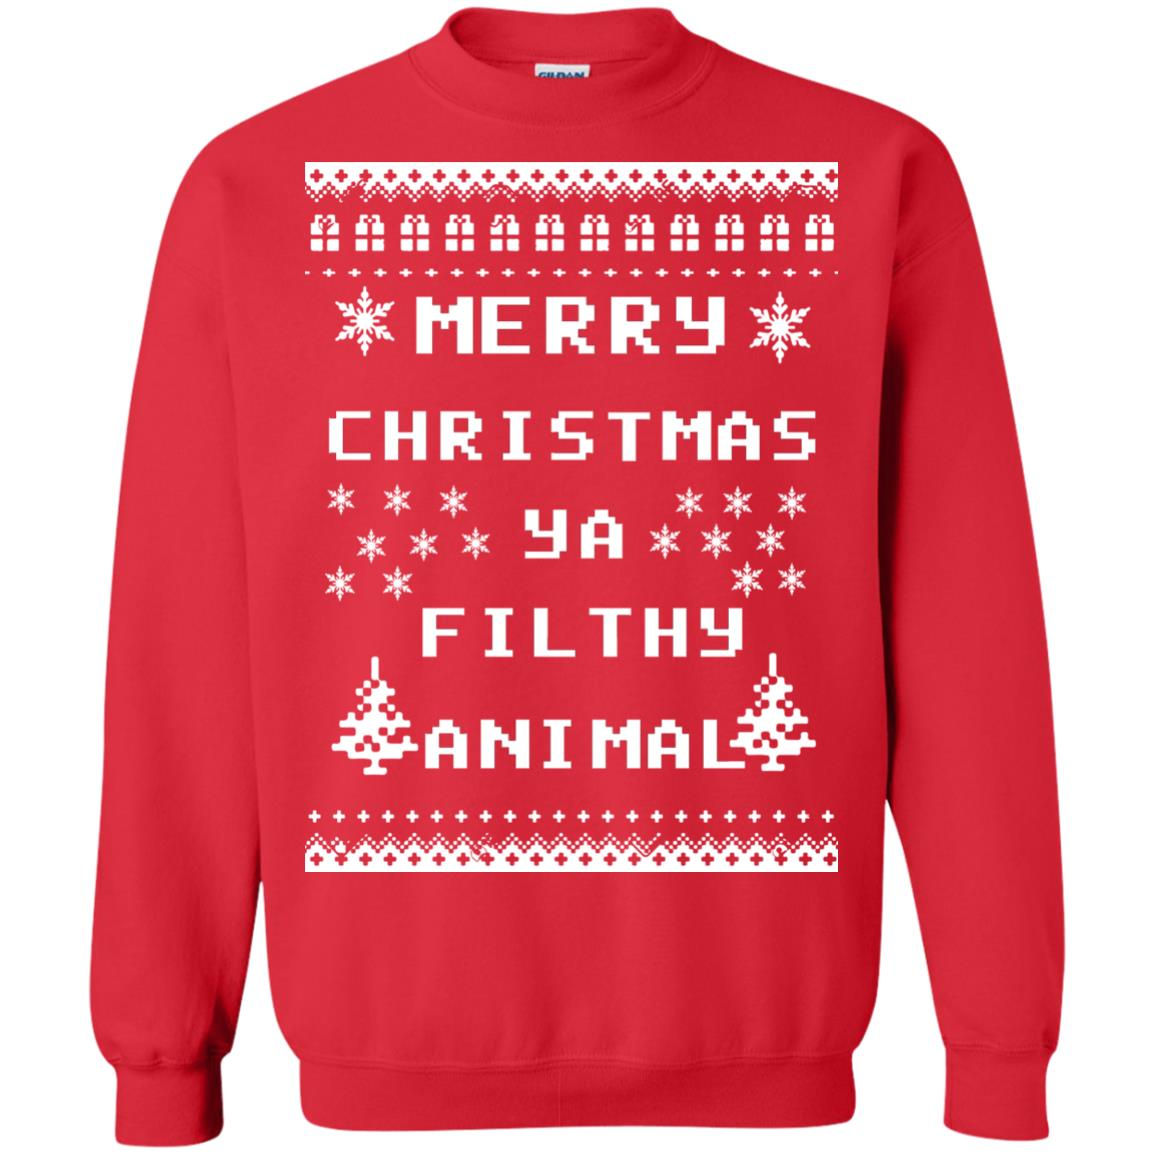 merry christmas ya filthy animal sweater hoodie image 3118 500x500 - Merry Christmas Ya Filthy Animal